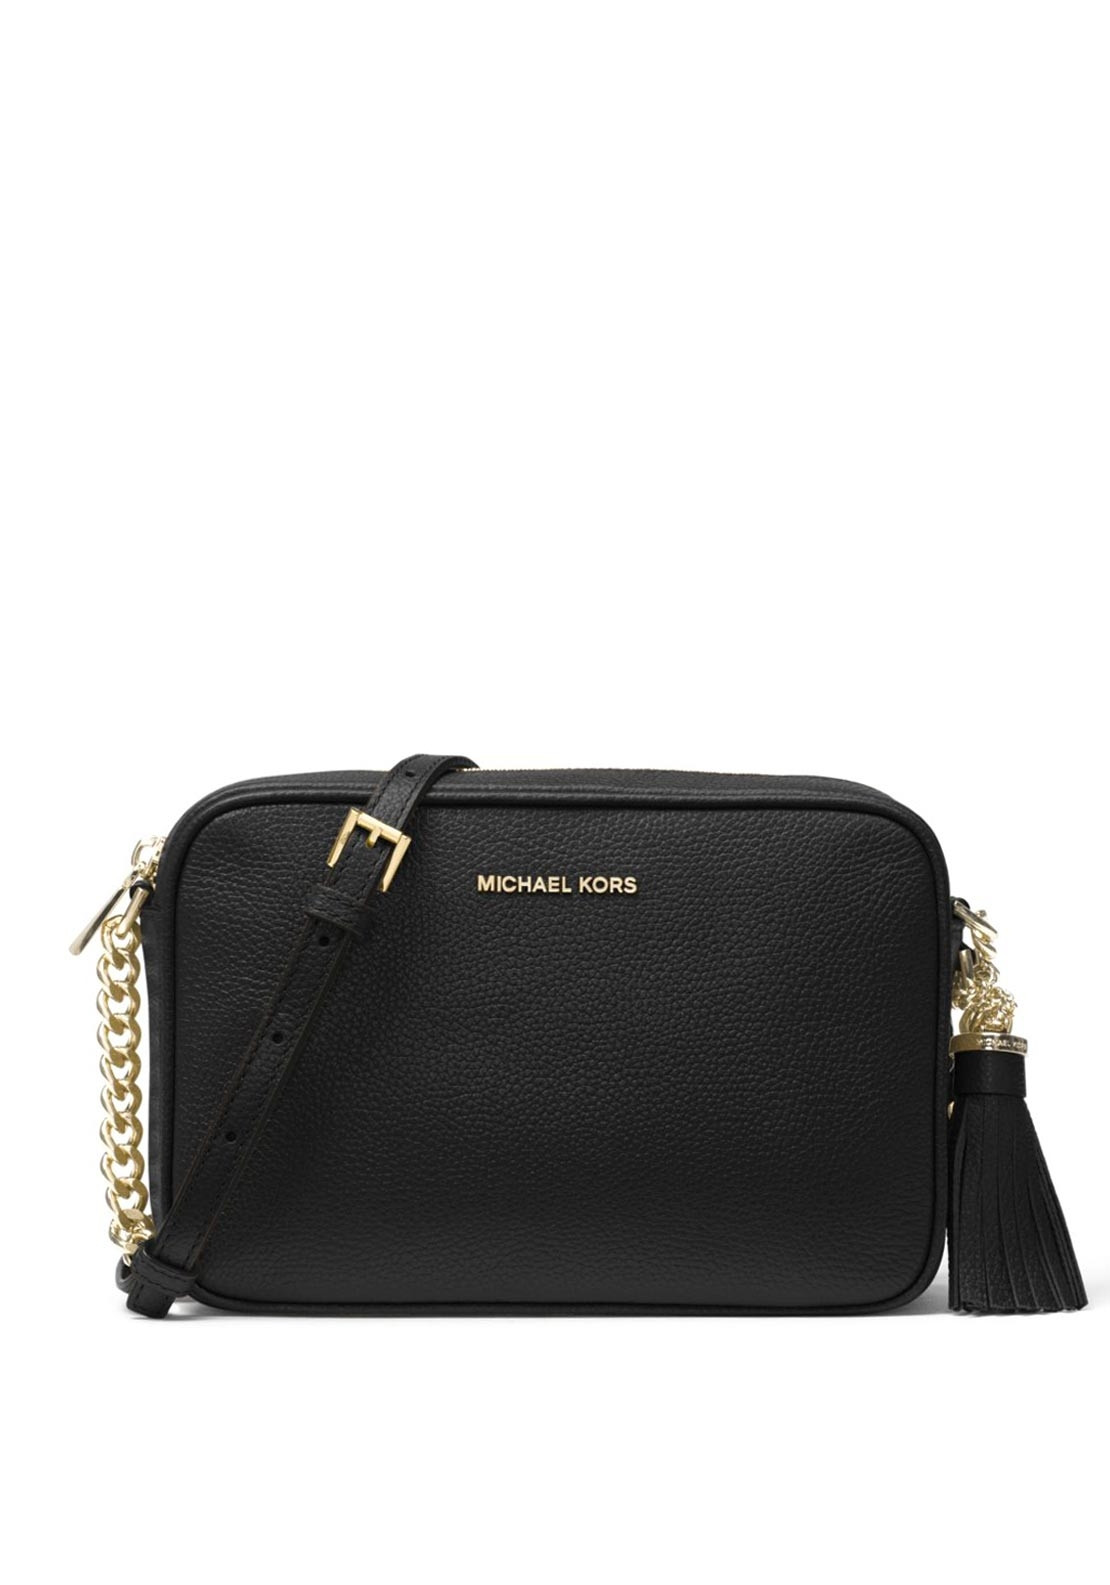 667b84eae MICHAEL Michael Kors Ginny Leather Crossbody Bag, Black. Be the first to  review this product